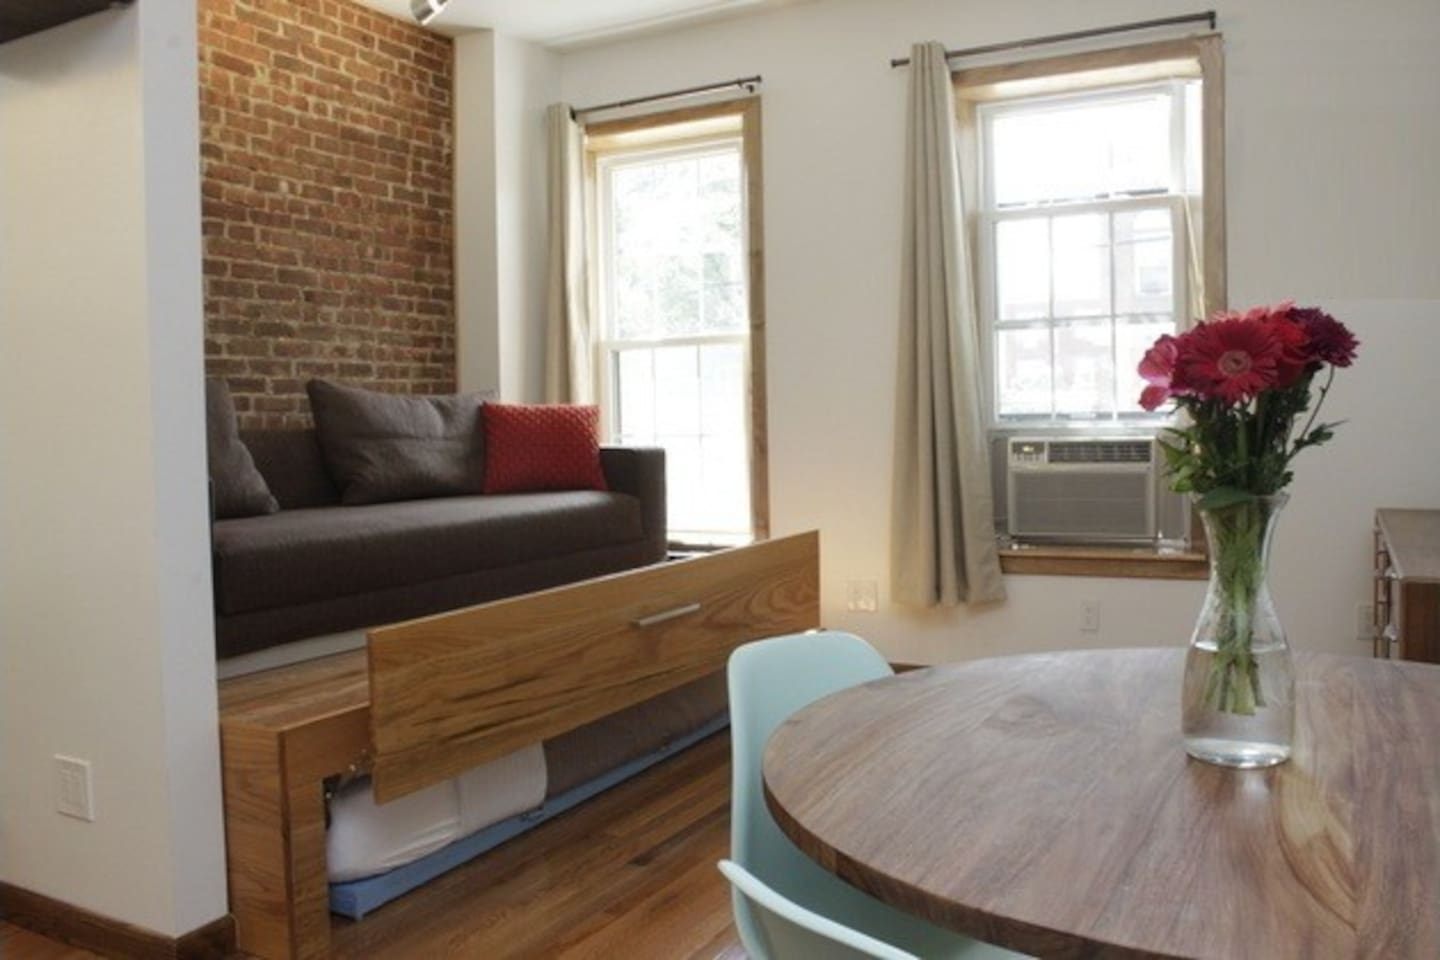 Modern Furniture Queens Ny modern unique studio in nyc - apartments for rent in queens, new